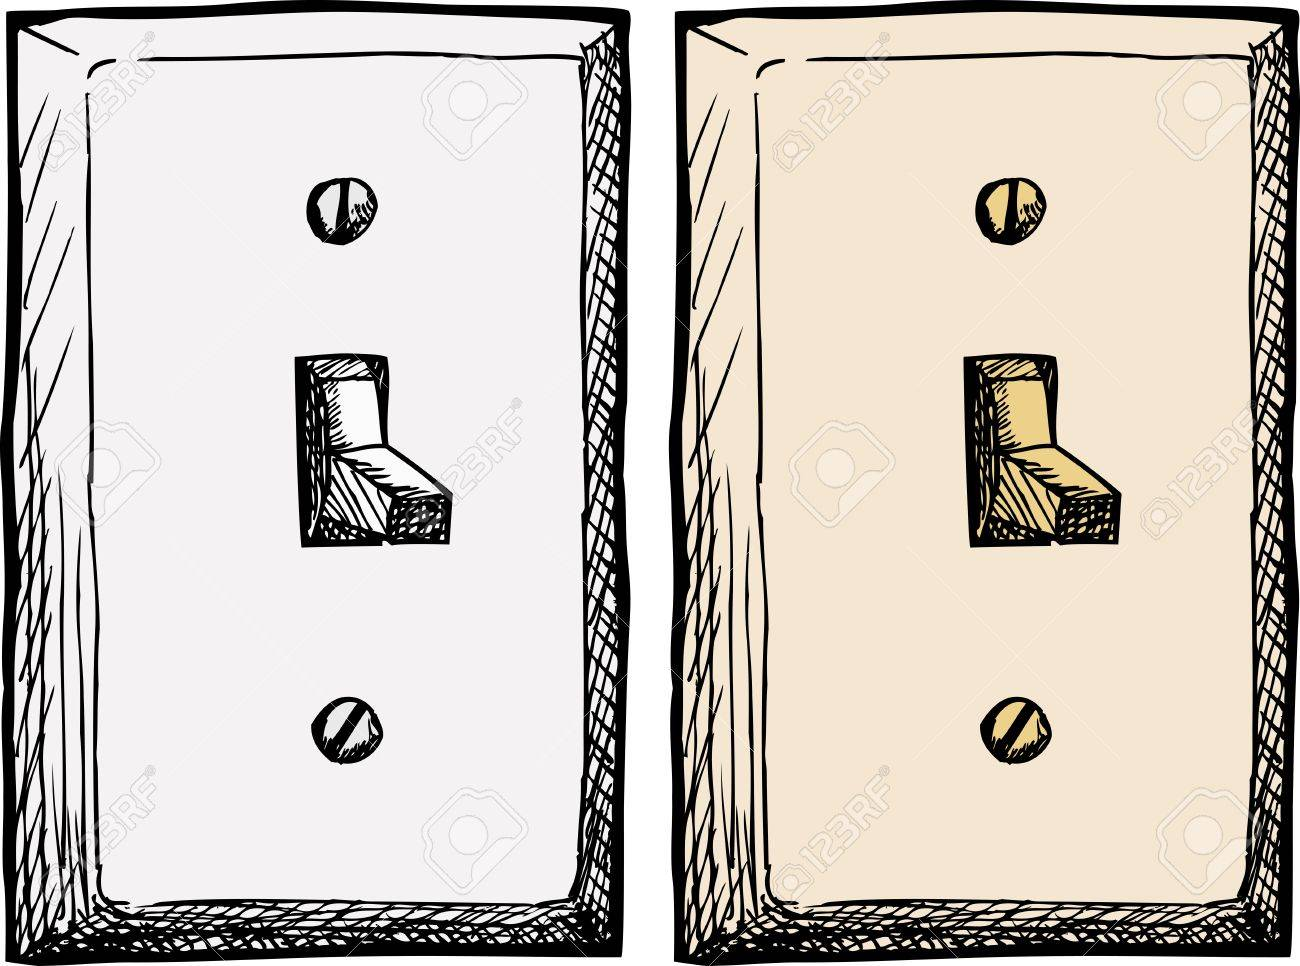 1300x966 Drawing Of A Single Wall Light Switch At An Angle Royalty Free